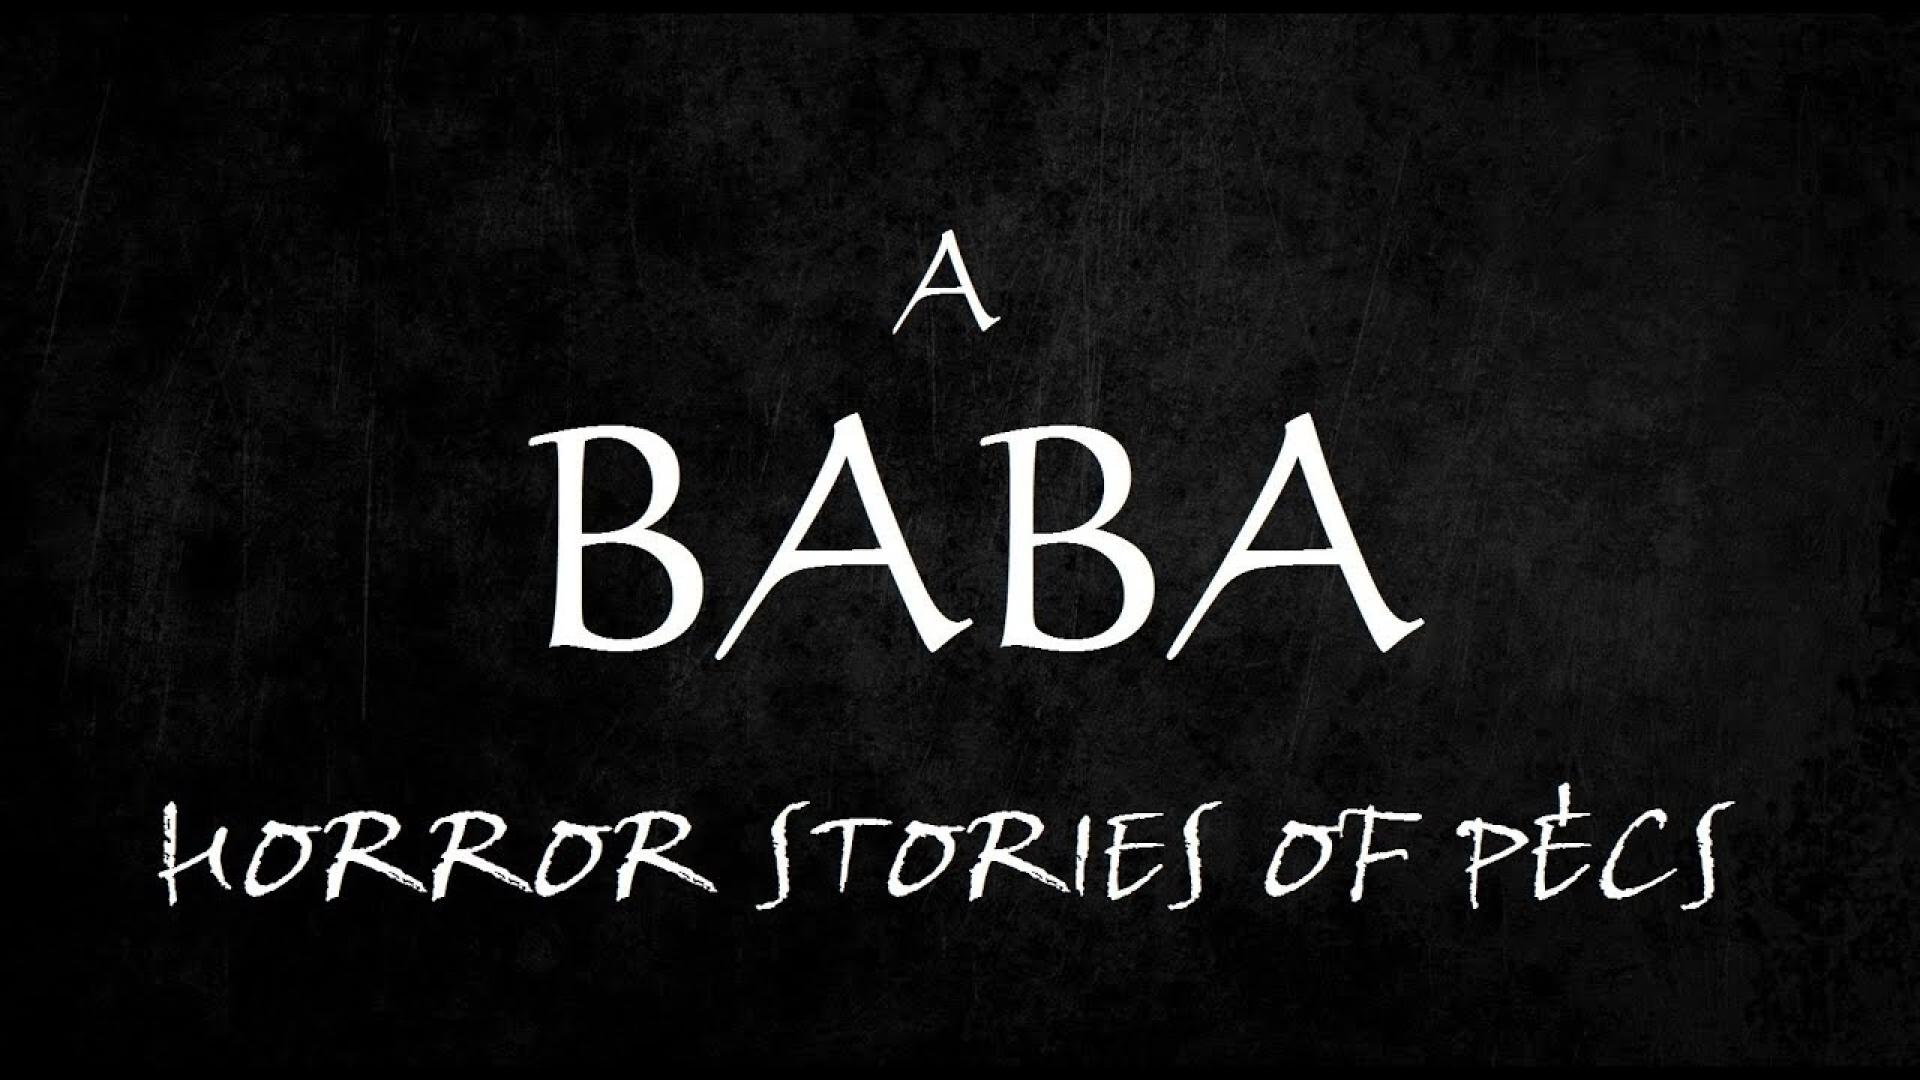 Horror Stories of Pécs: A Baba